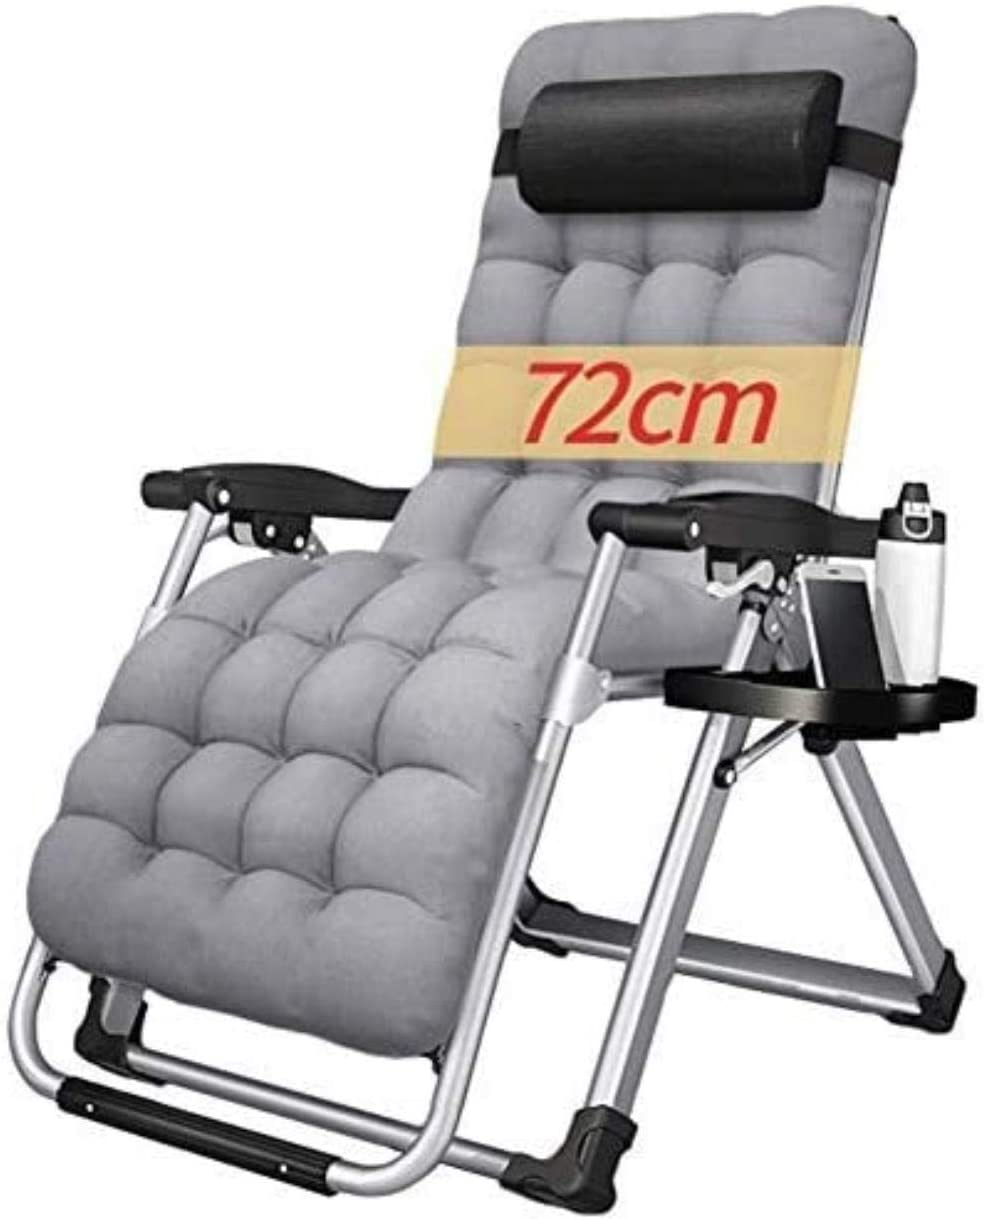 chair Comfortable Patio Lounger Foldable Adjustable Recliner Outdoor Office Beach Recliner Lunch Break Support 440lbs with Cushions (Color : Gray),Colour:Black